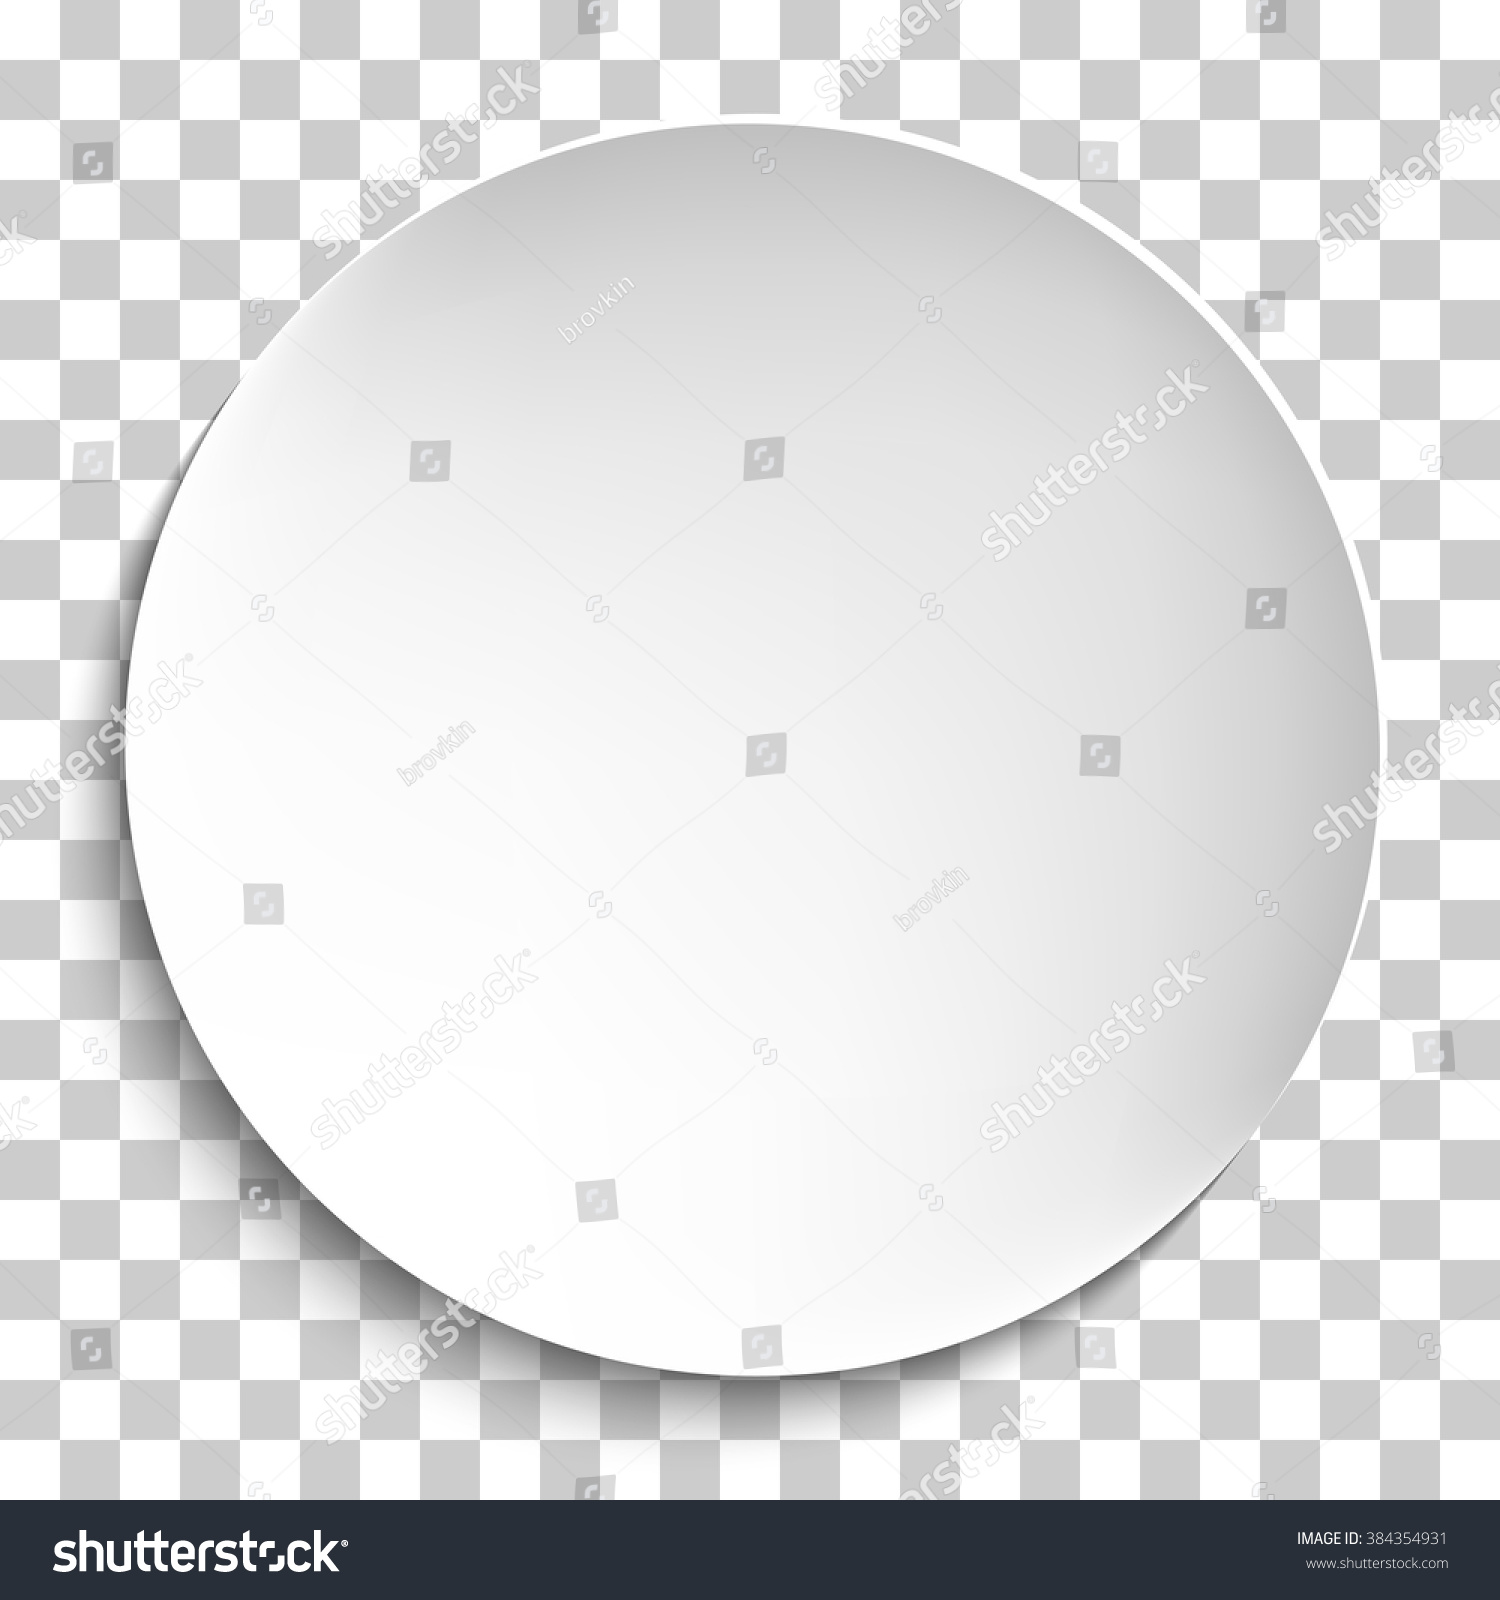 Empty White Paper Plate Vector Round Stock Vector  : stock vector empty white paper plate vector round plate illustration on transparent background plate 384354931 from www.shutterstock.com size 1500 x 1600 jpeg 209kB